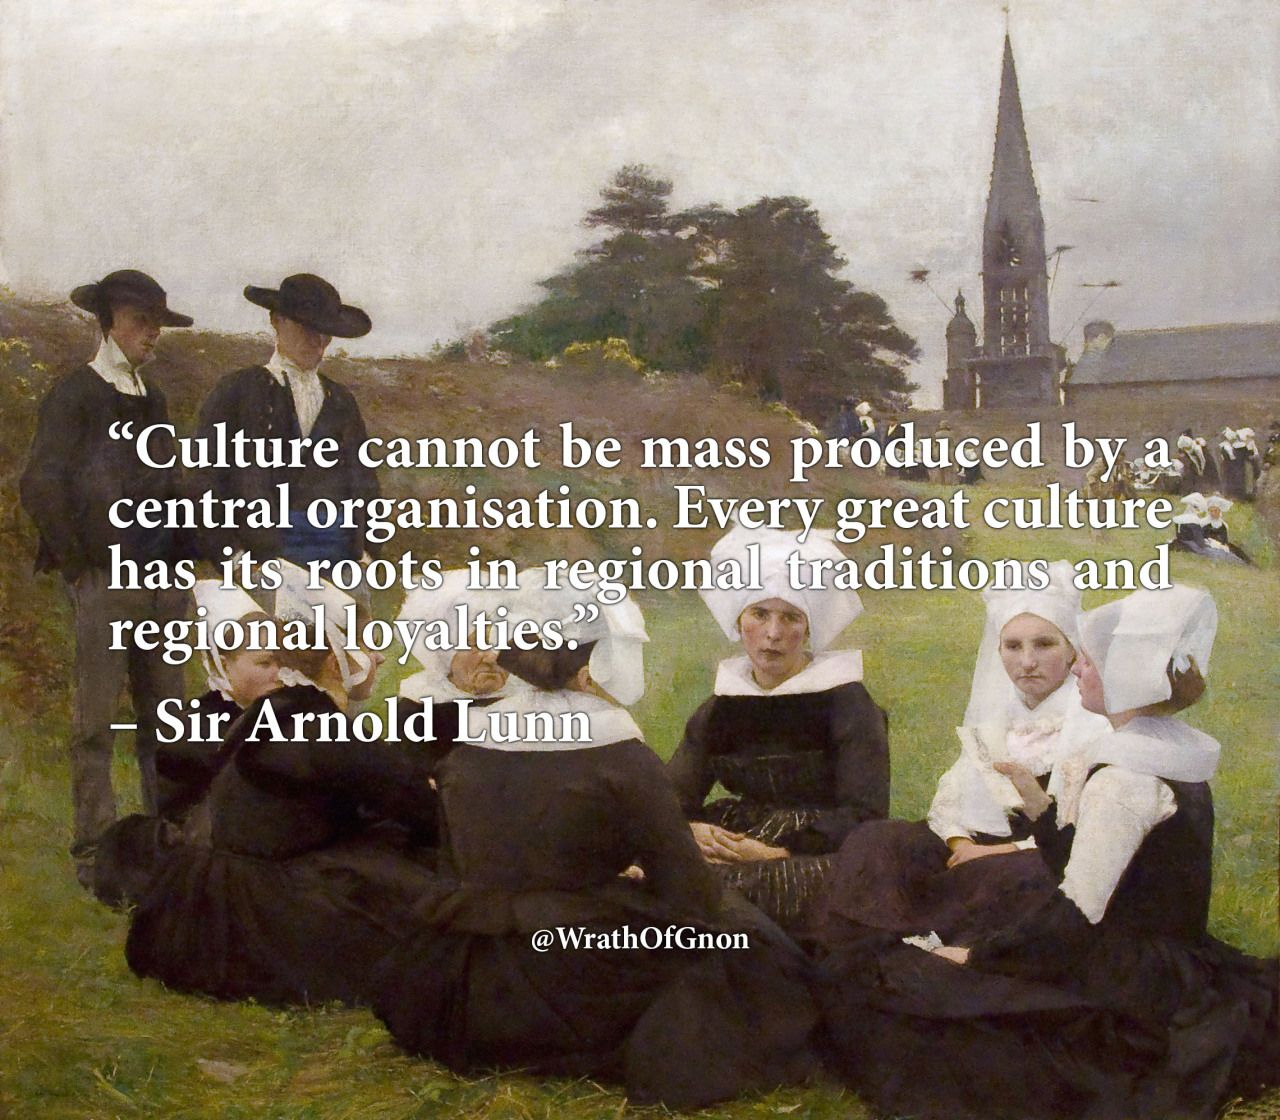 the concept of organizational culture has its roots in